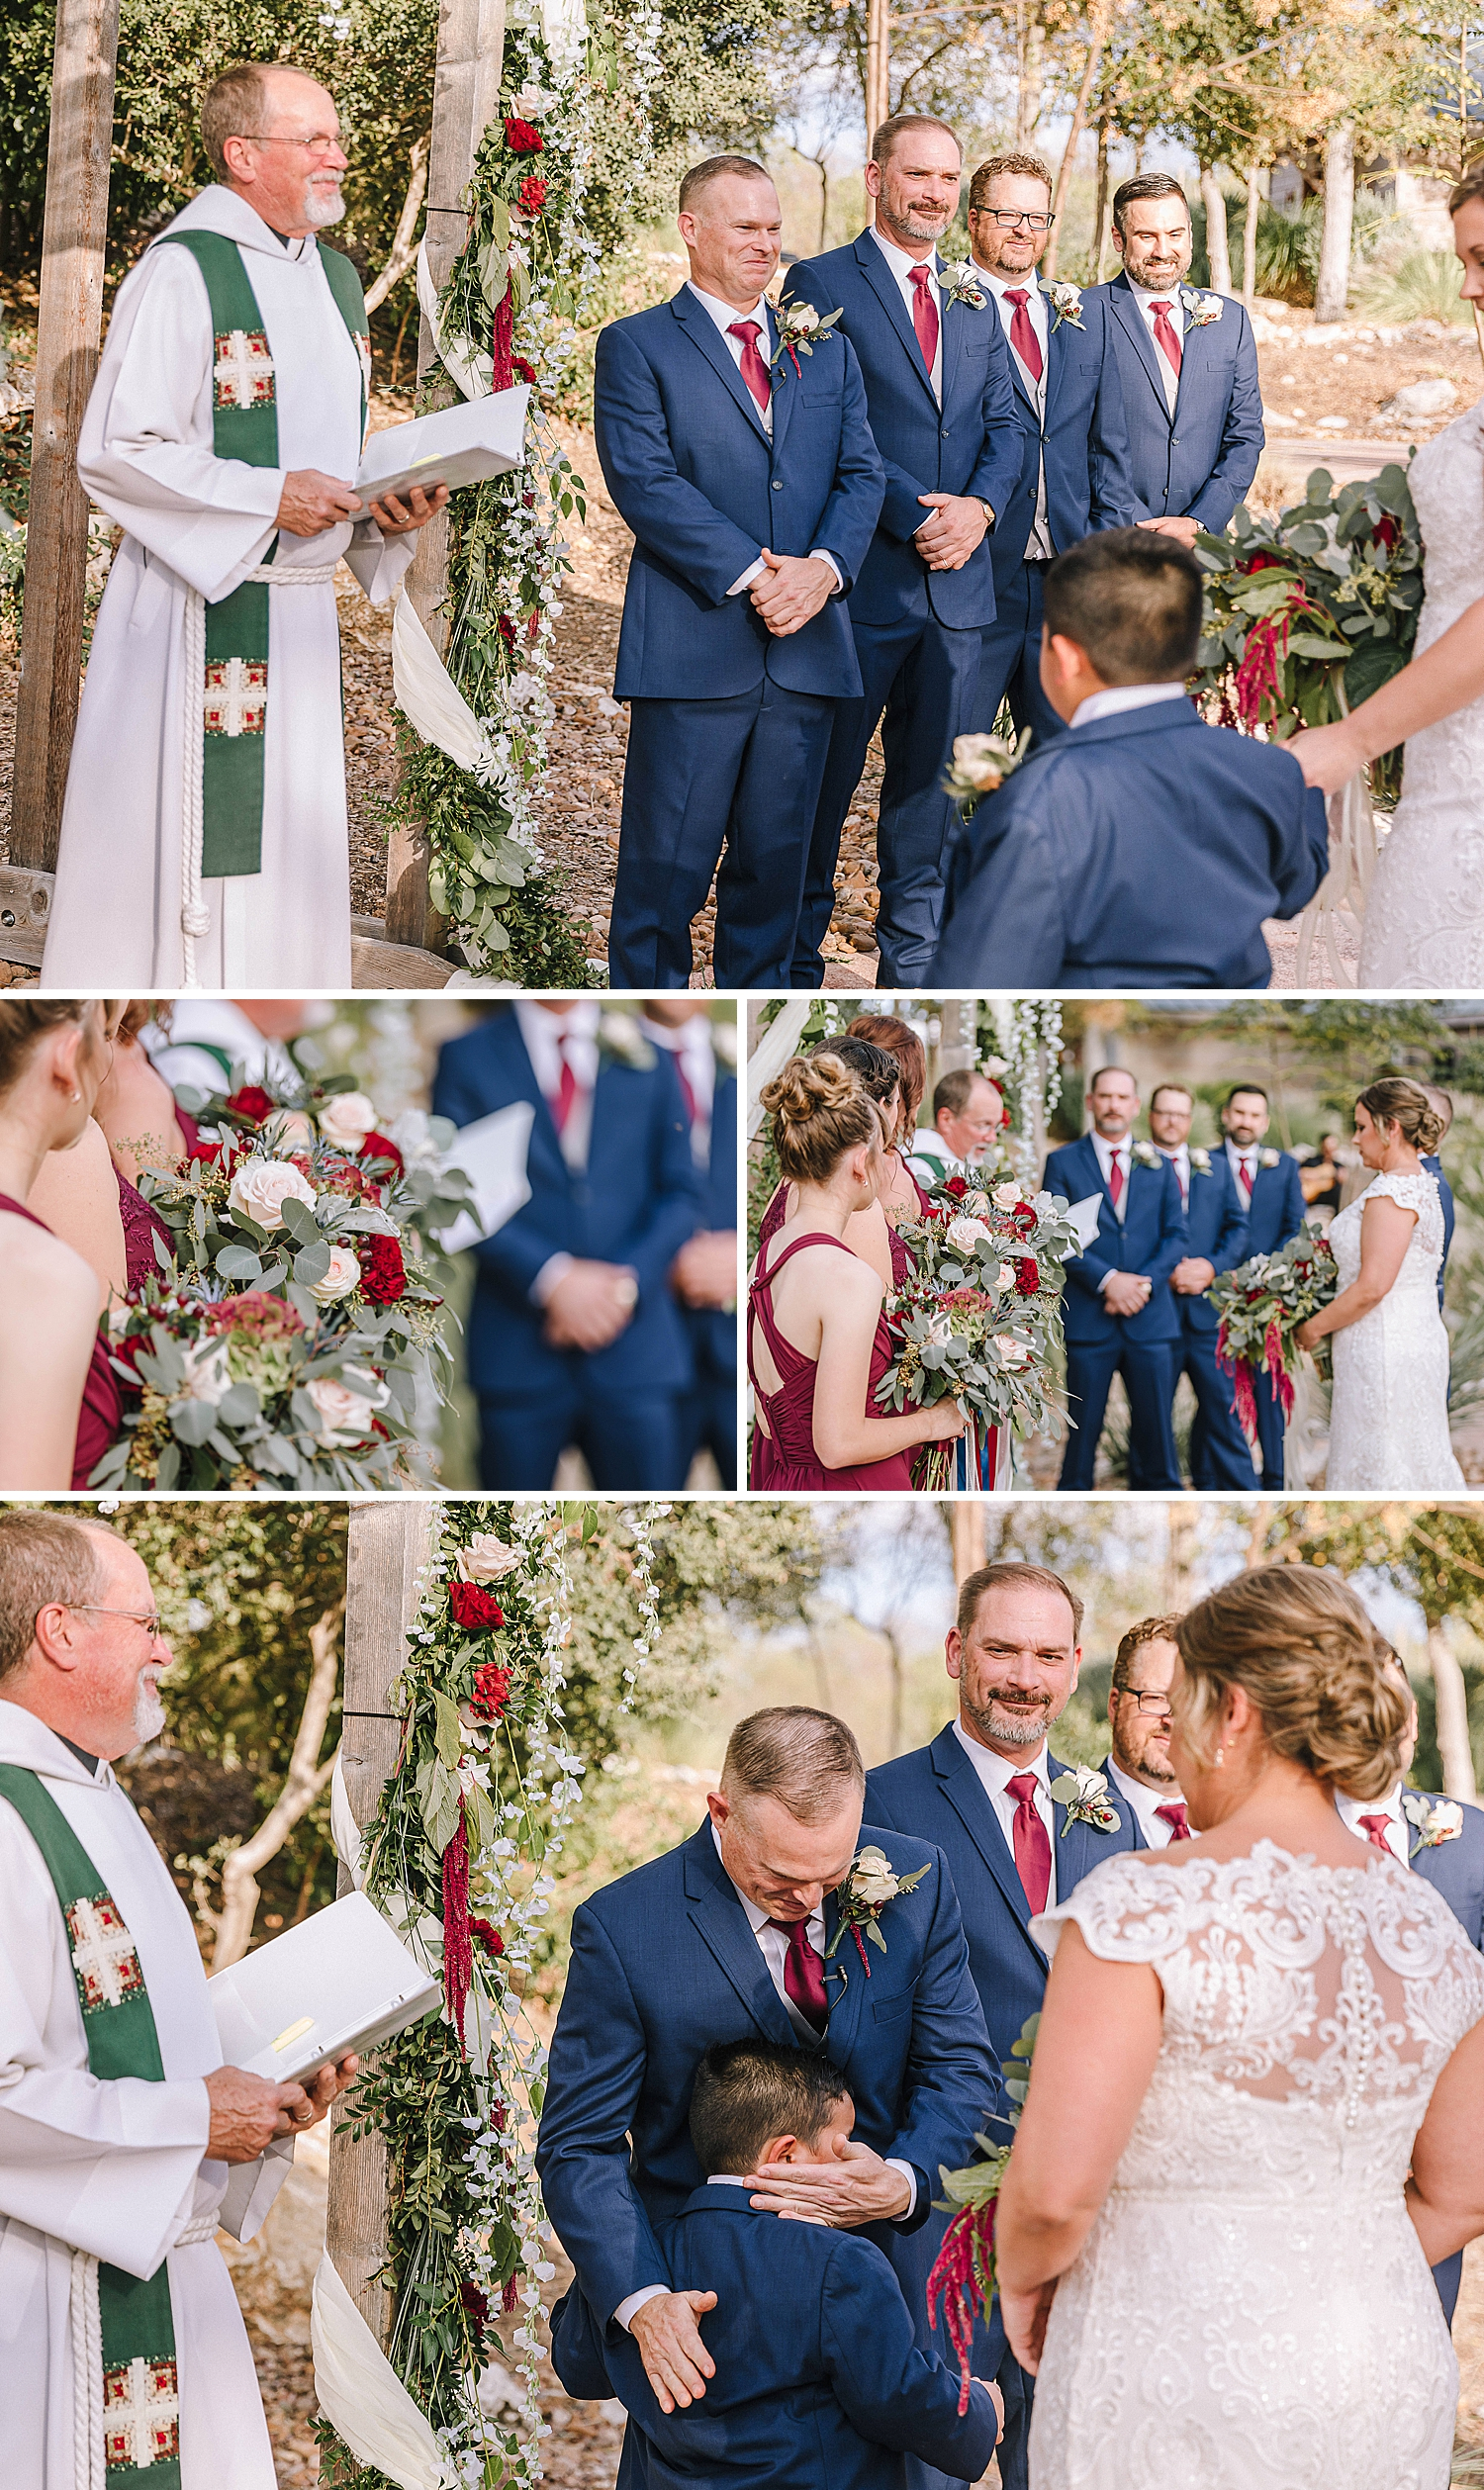 Geronimo-Oaks-Wedding-Venue-Seguin-Texas-Elegant-Navy-Burgundy-Wedding-Carly-Barton-Photography_0021.jpg